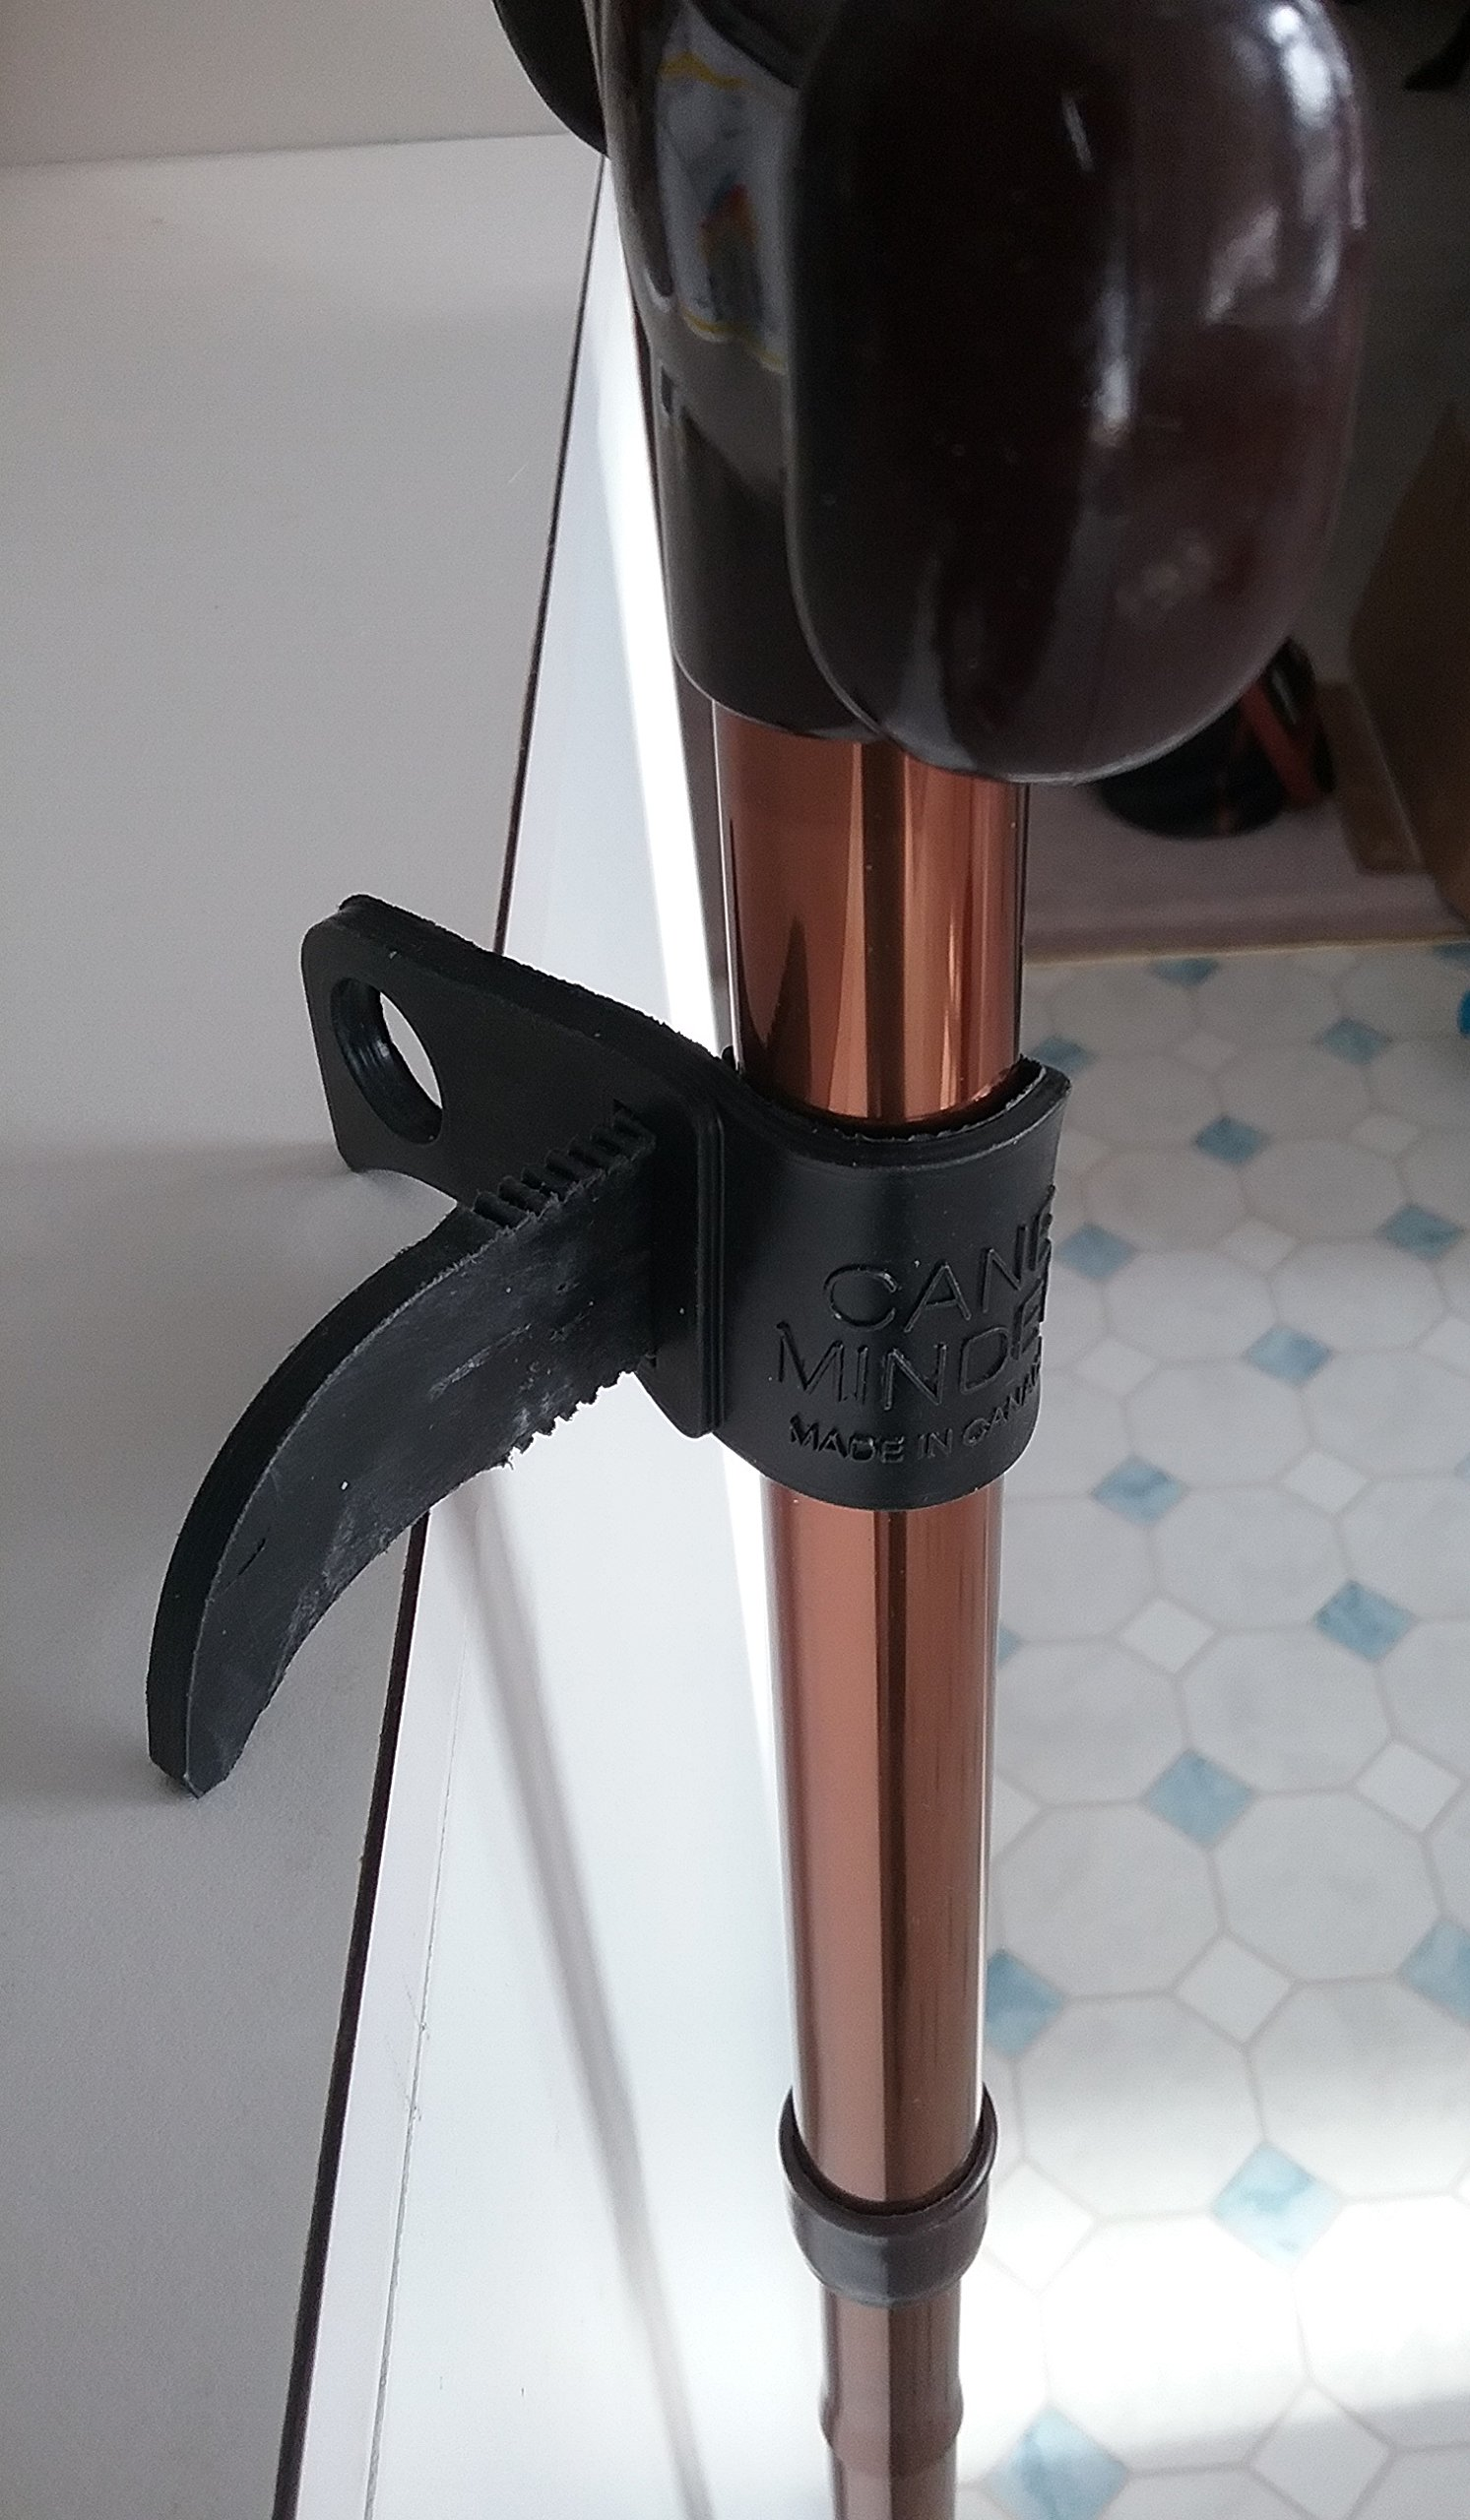 Cane Minder-New-Improved-The best most useful and versatile cane holder accessory. Stop your cane from falling to the floor!